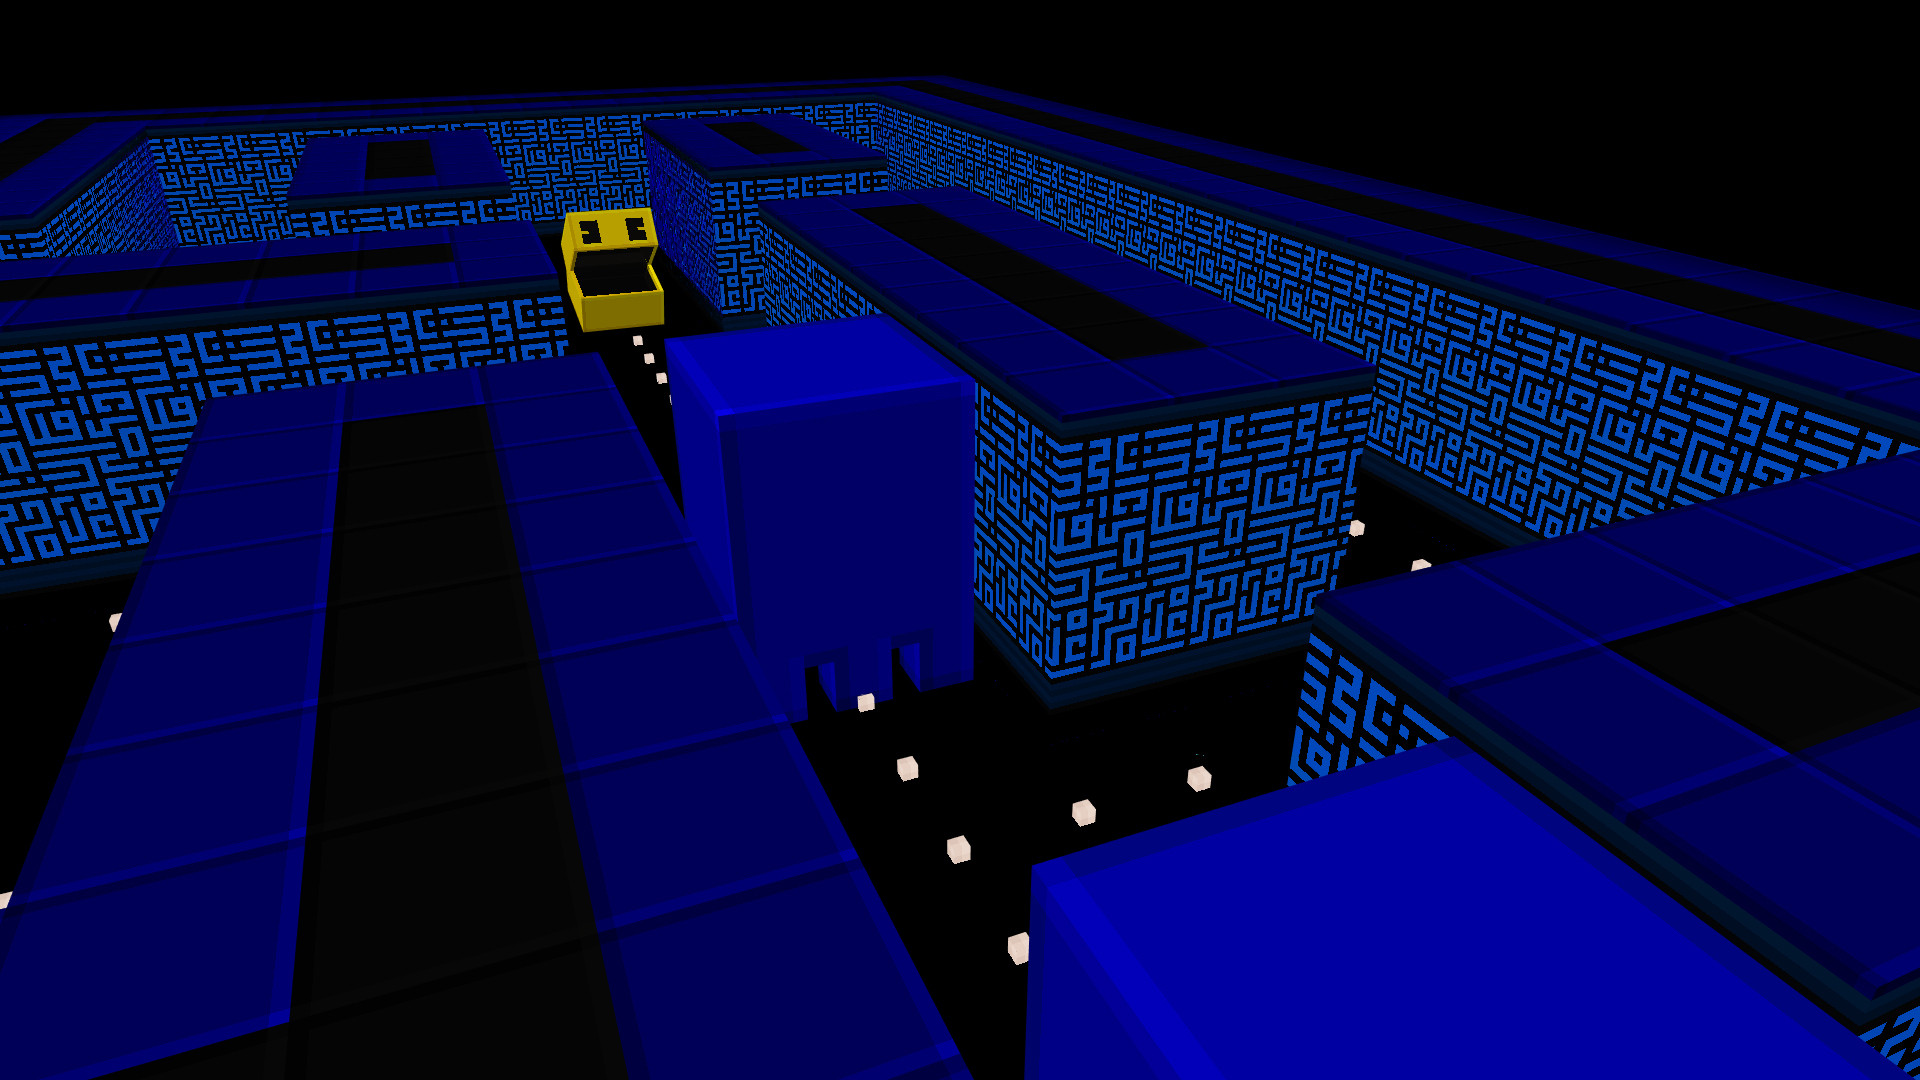 PAC-MAN_MarketingScreenshot_3.jpg